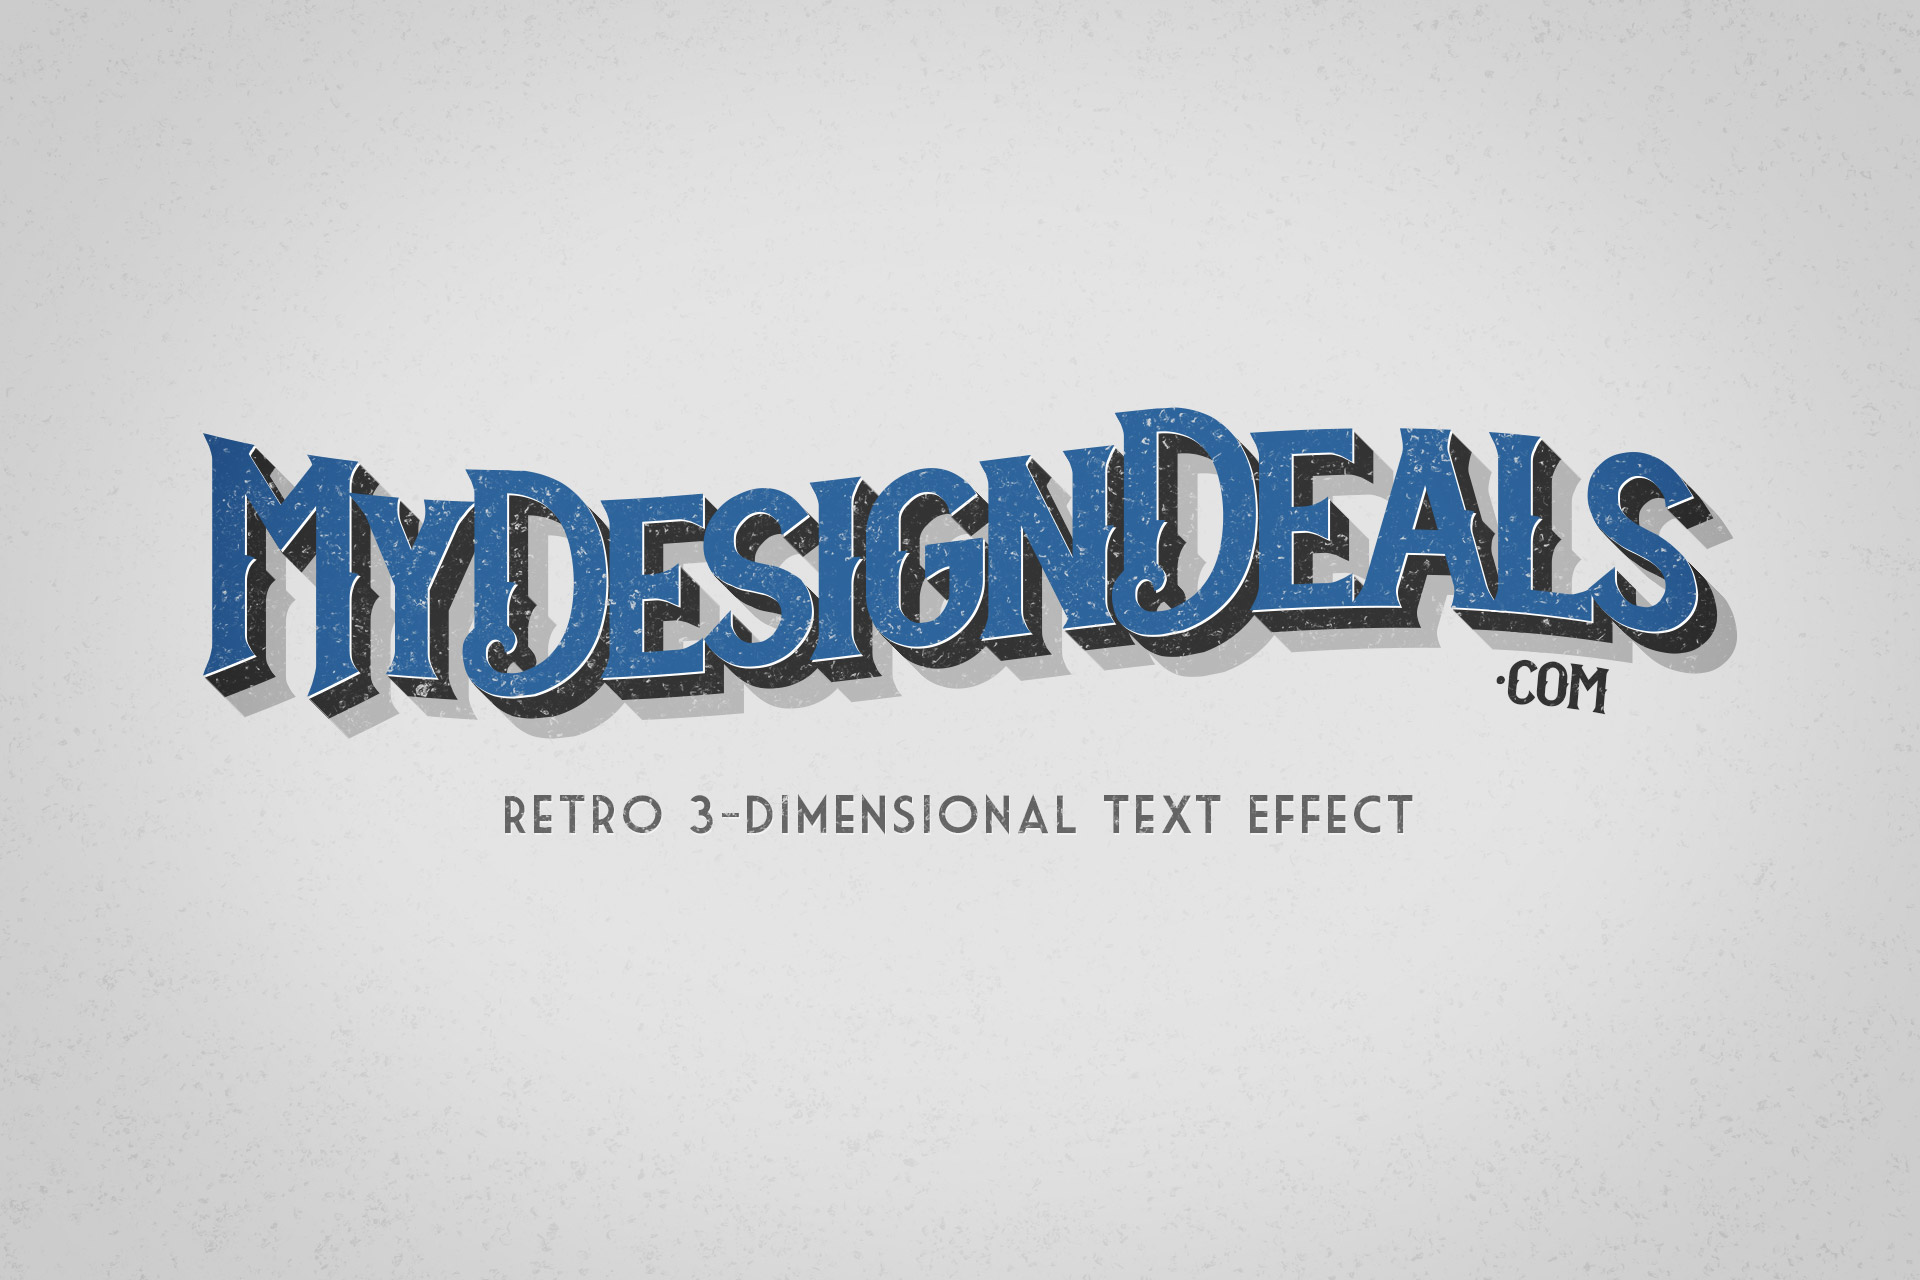 How To Create A Retro 3 Dimensional Text Effect In Photoshop